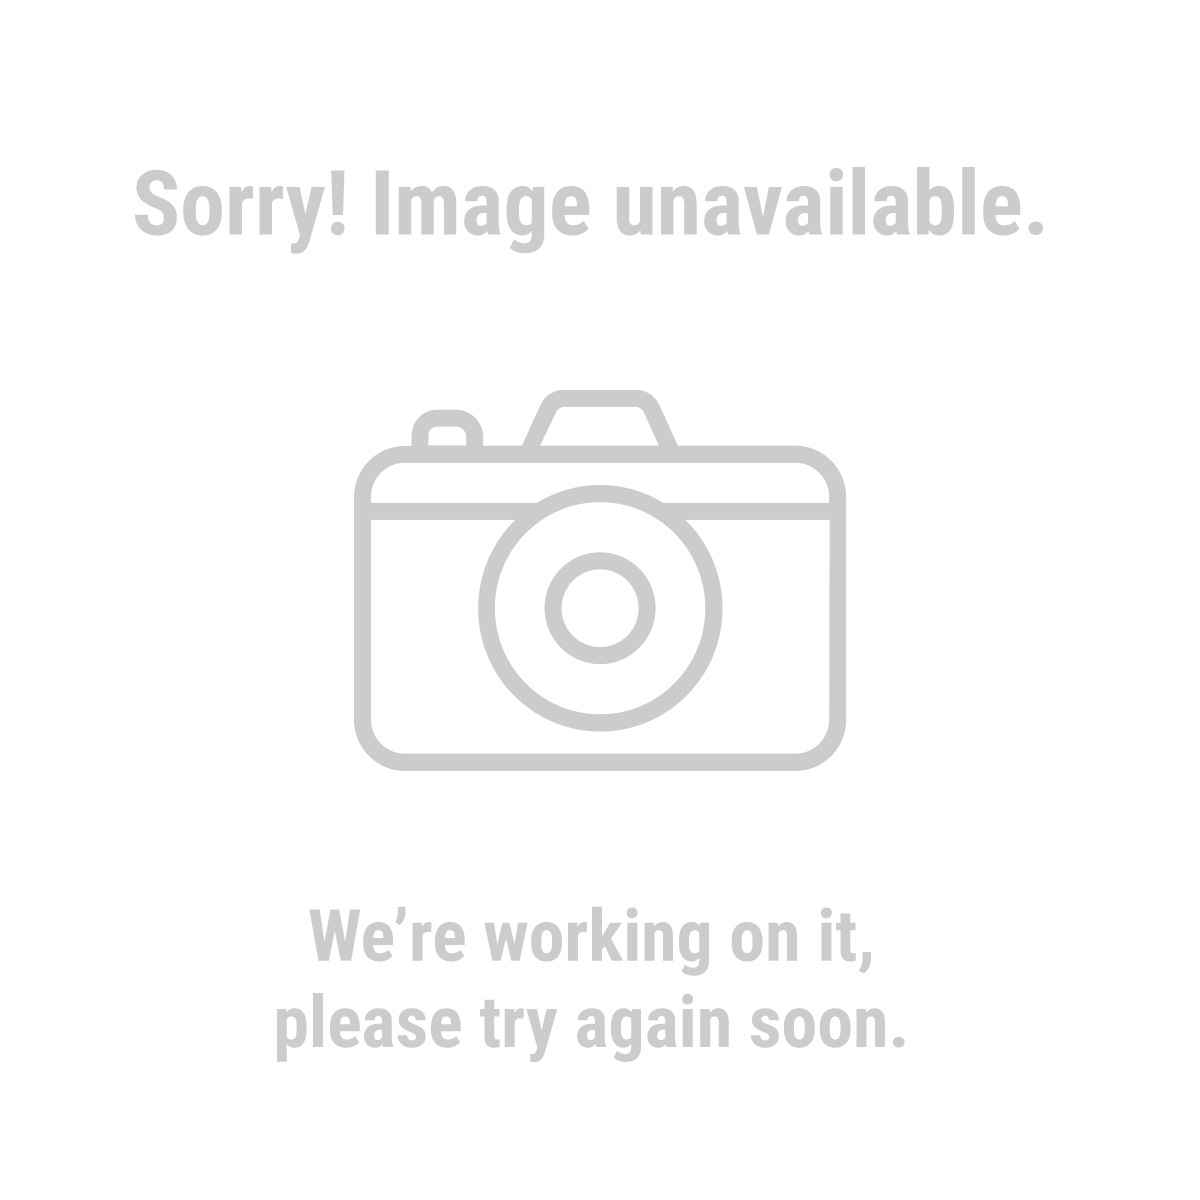 Warrior® 62694 High Carbon Steel Rotary Rasp Set 10 Pc